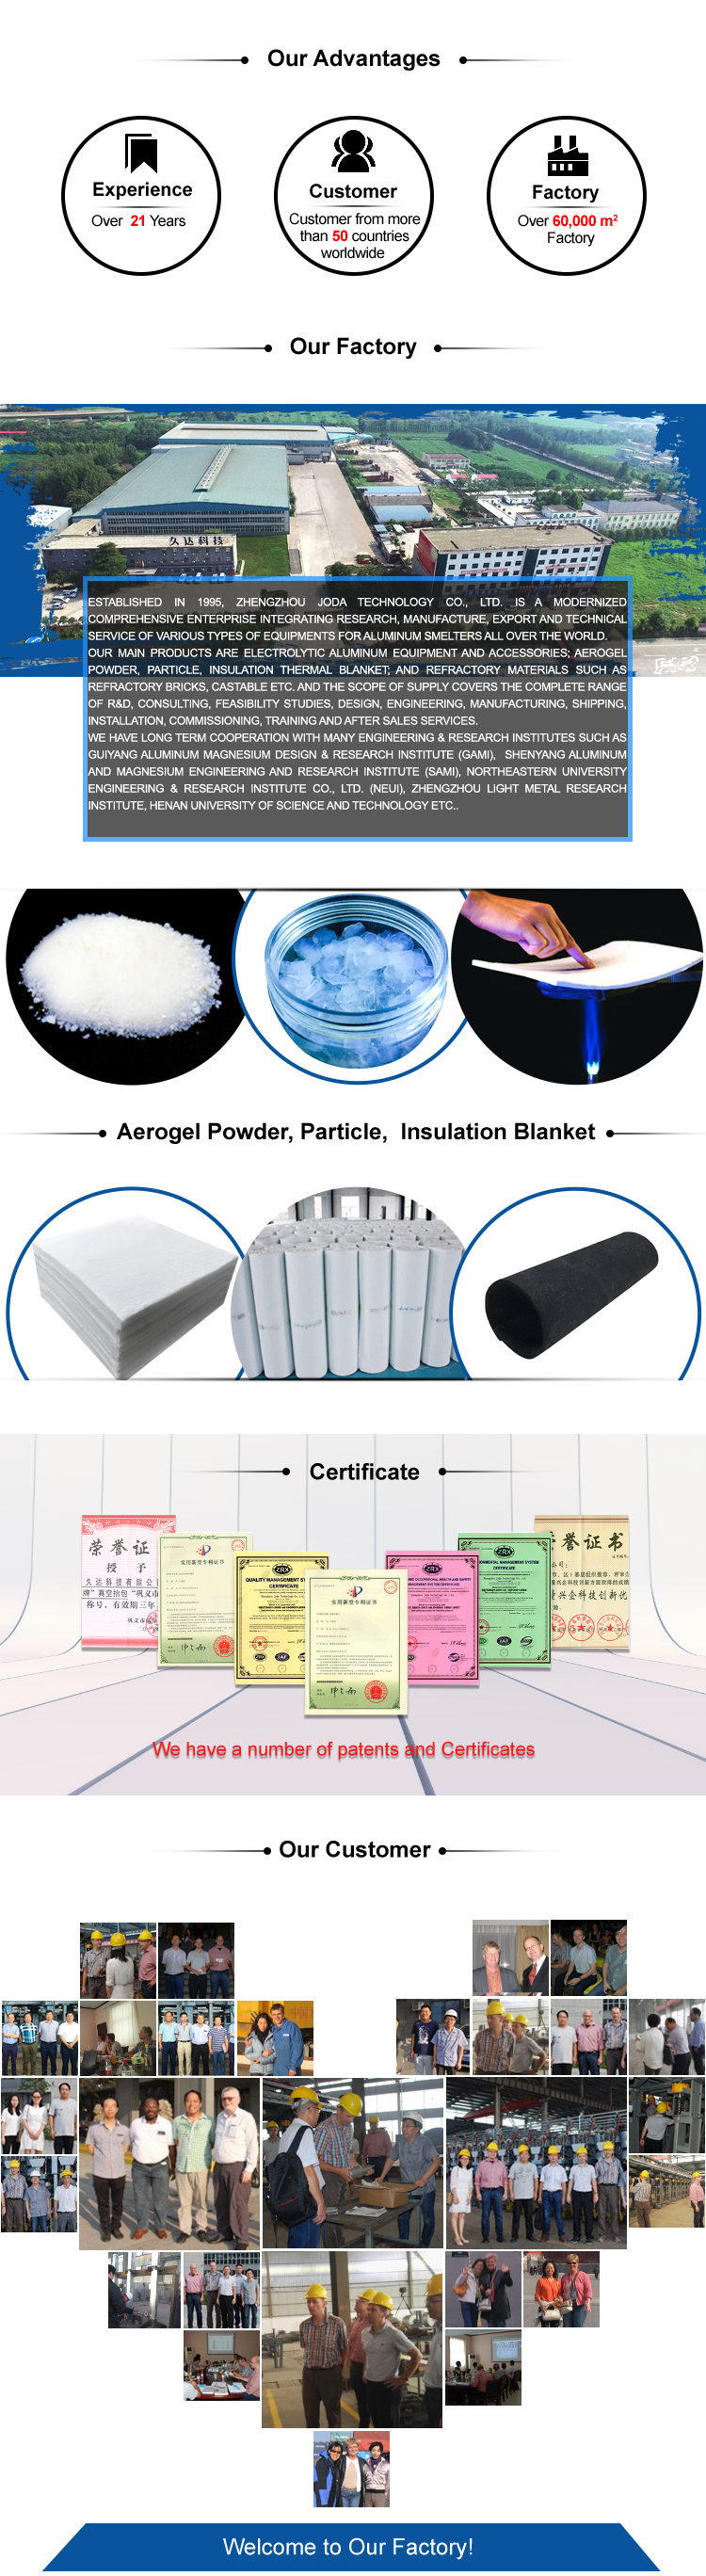 Aerogel Sale Lowes Fire Proof Insulation Ceramic Fiber Blanket Furnace Insulation Materials